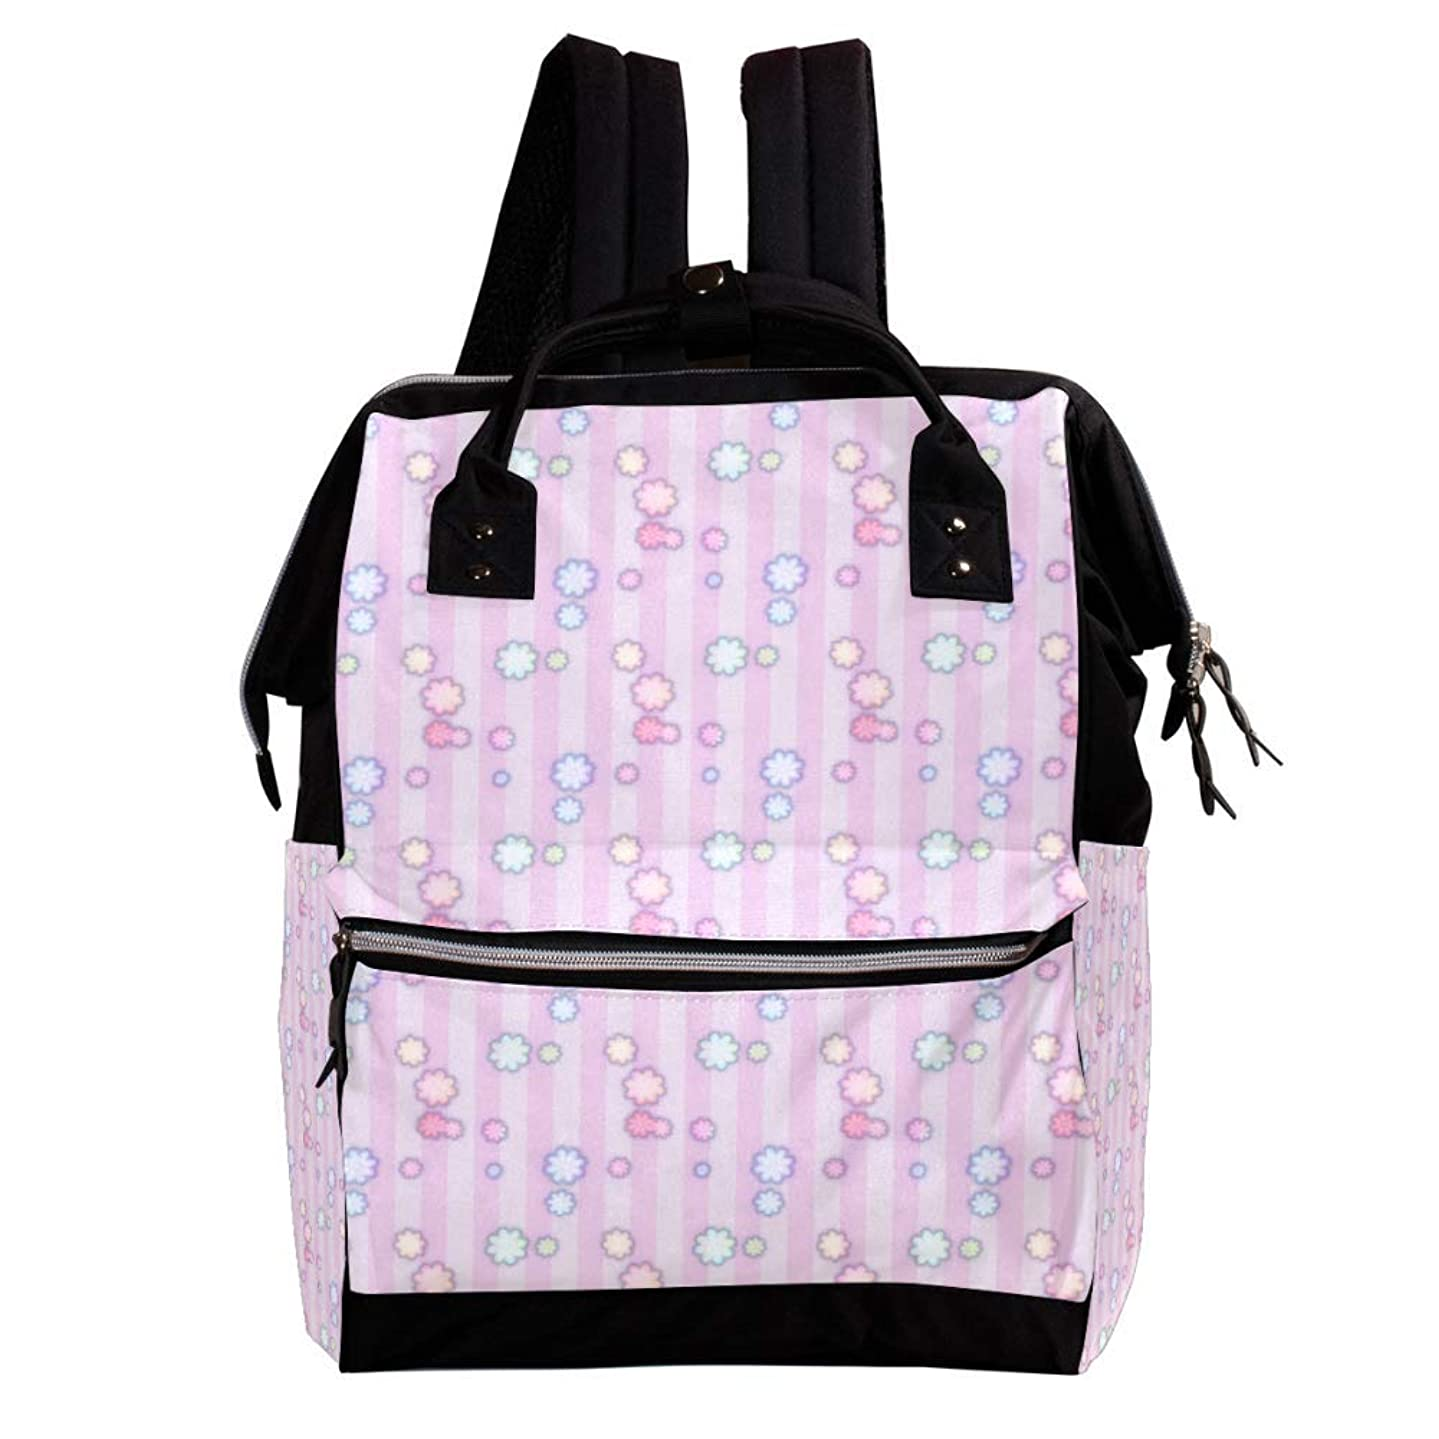 Little Flowers with Stripes Pattern Diaper Bag Backpack for Mom, Large Capacity Multi-Function Travel Backpack Maternity Nappy Bags for Baby Care, Stylish and Durable, Lightweight